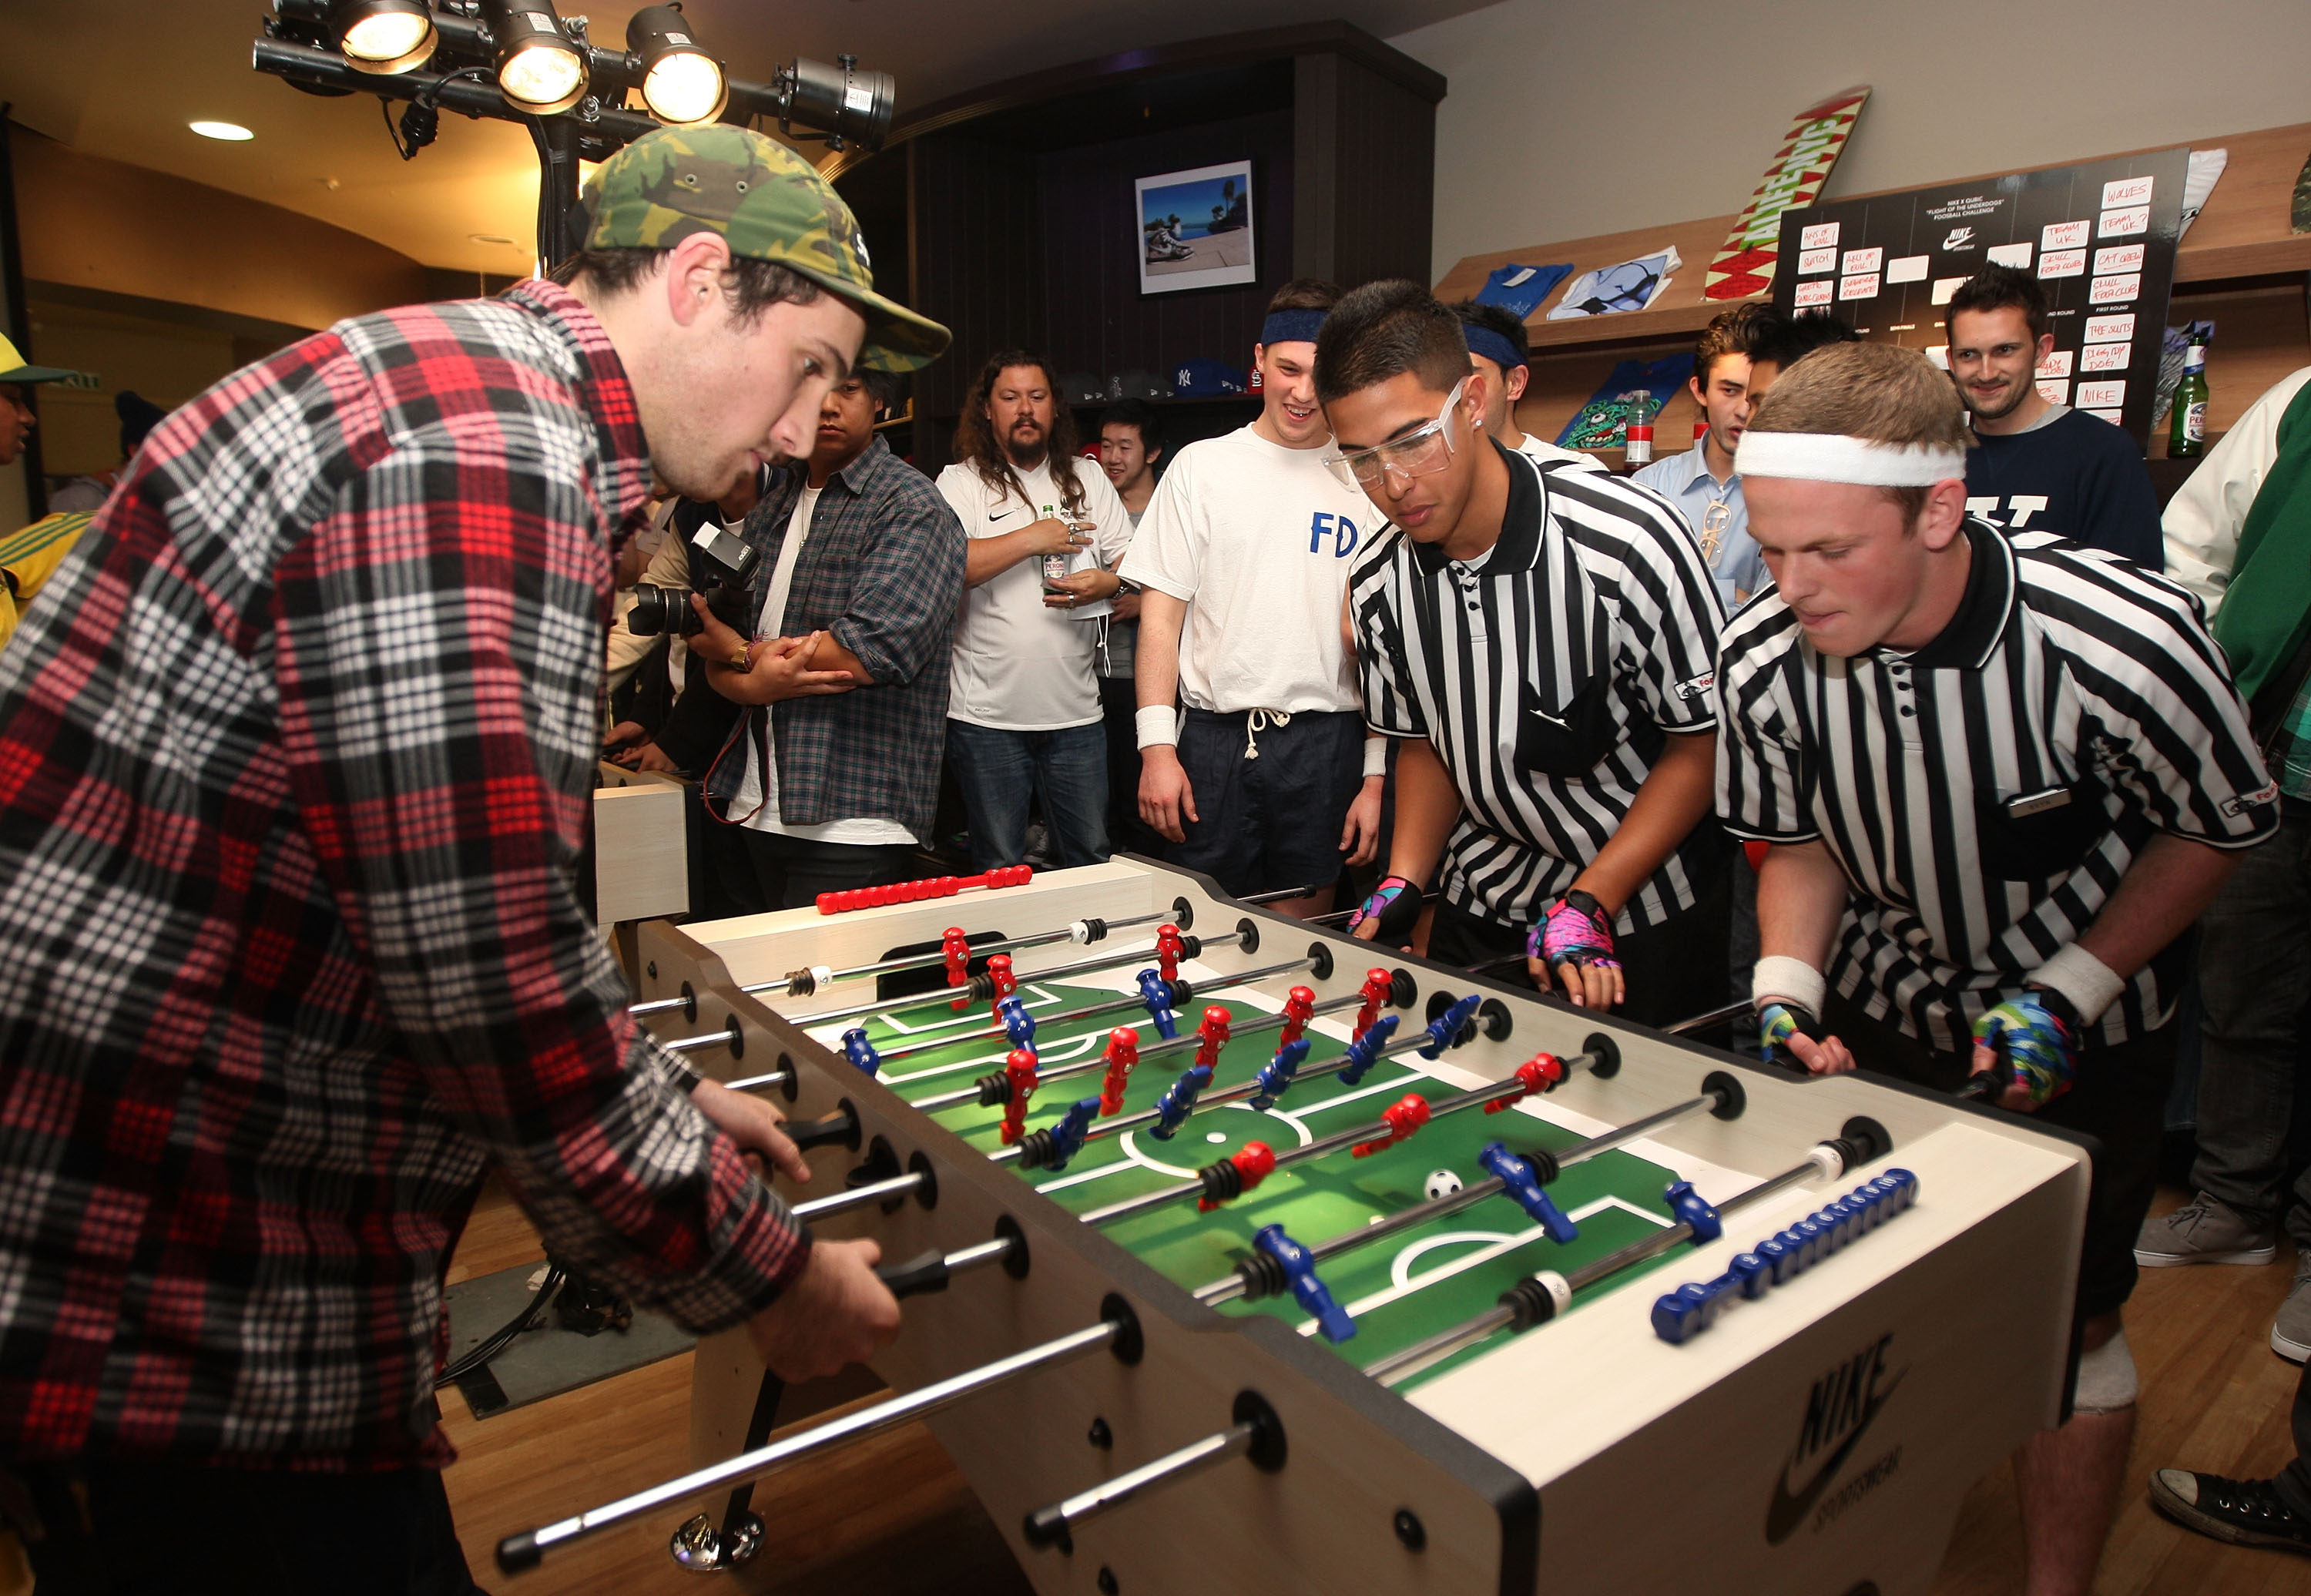 AUCKLAND, NEW ZEALAND - JUNE 15:  All White supporters play foosball inside the retail shop Qubic during a Nike function to watch the match between New Zealand and Slovakia at the 2010 World Cup in South Africa  on June 15, 2010 in Auckland, New Zealand.